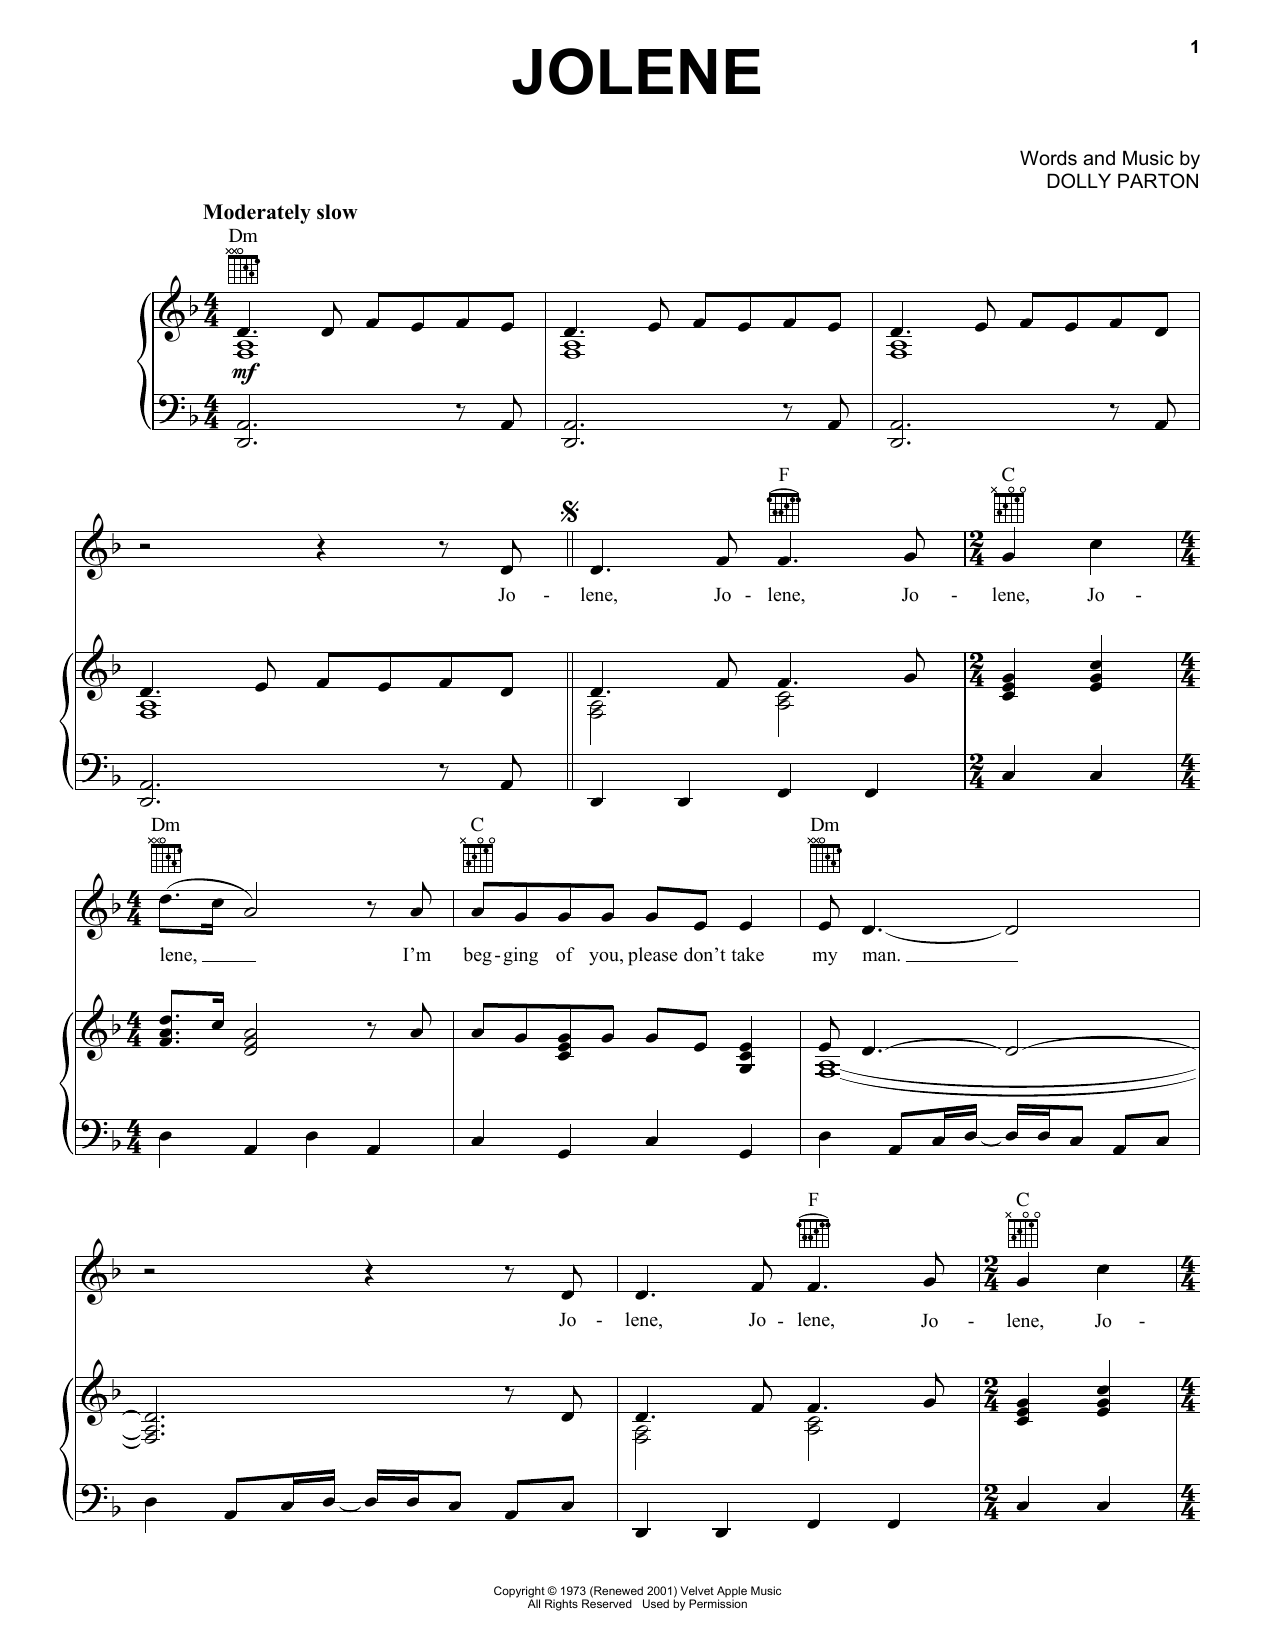 Jolene sheet music